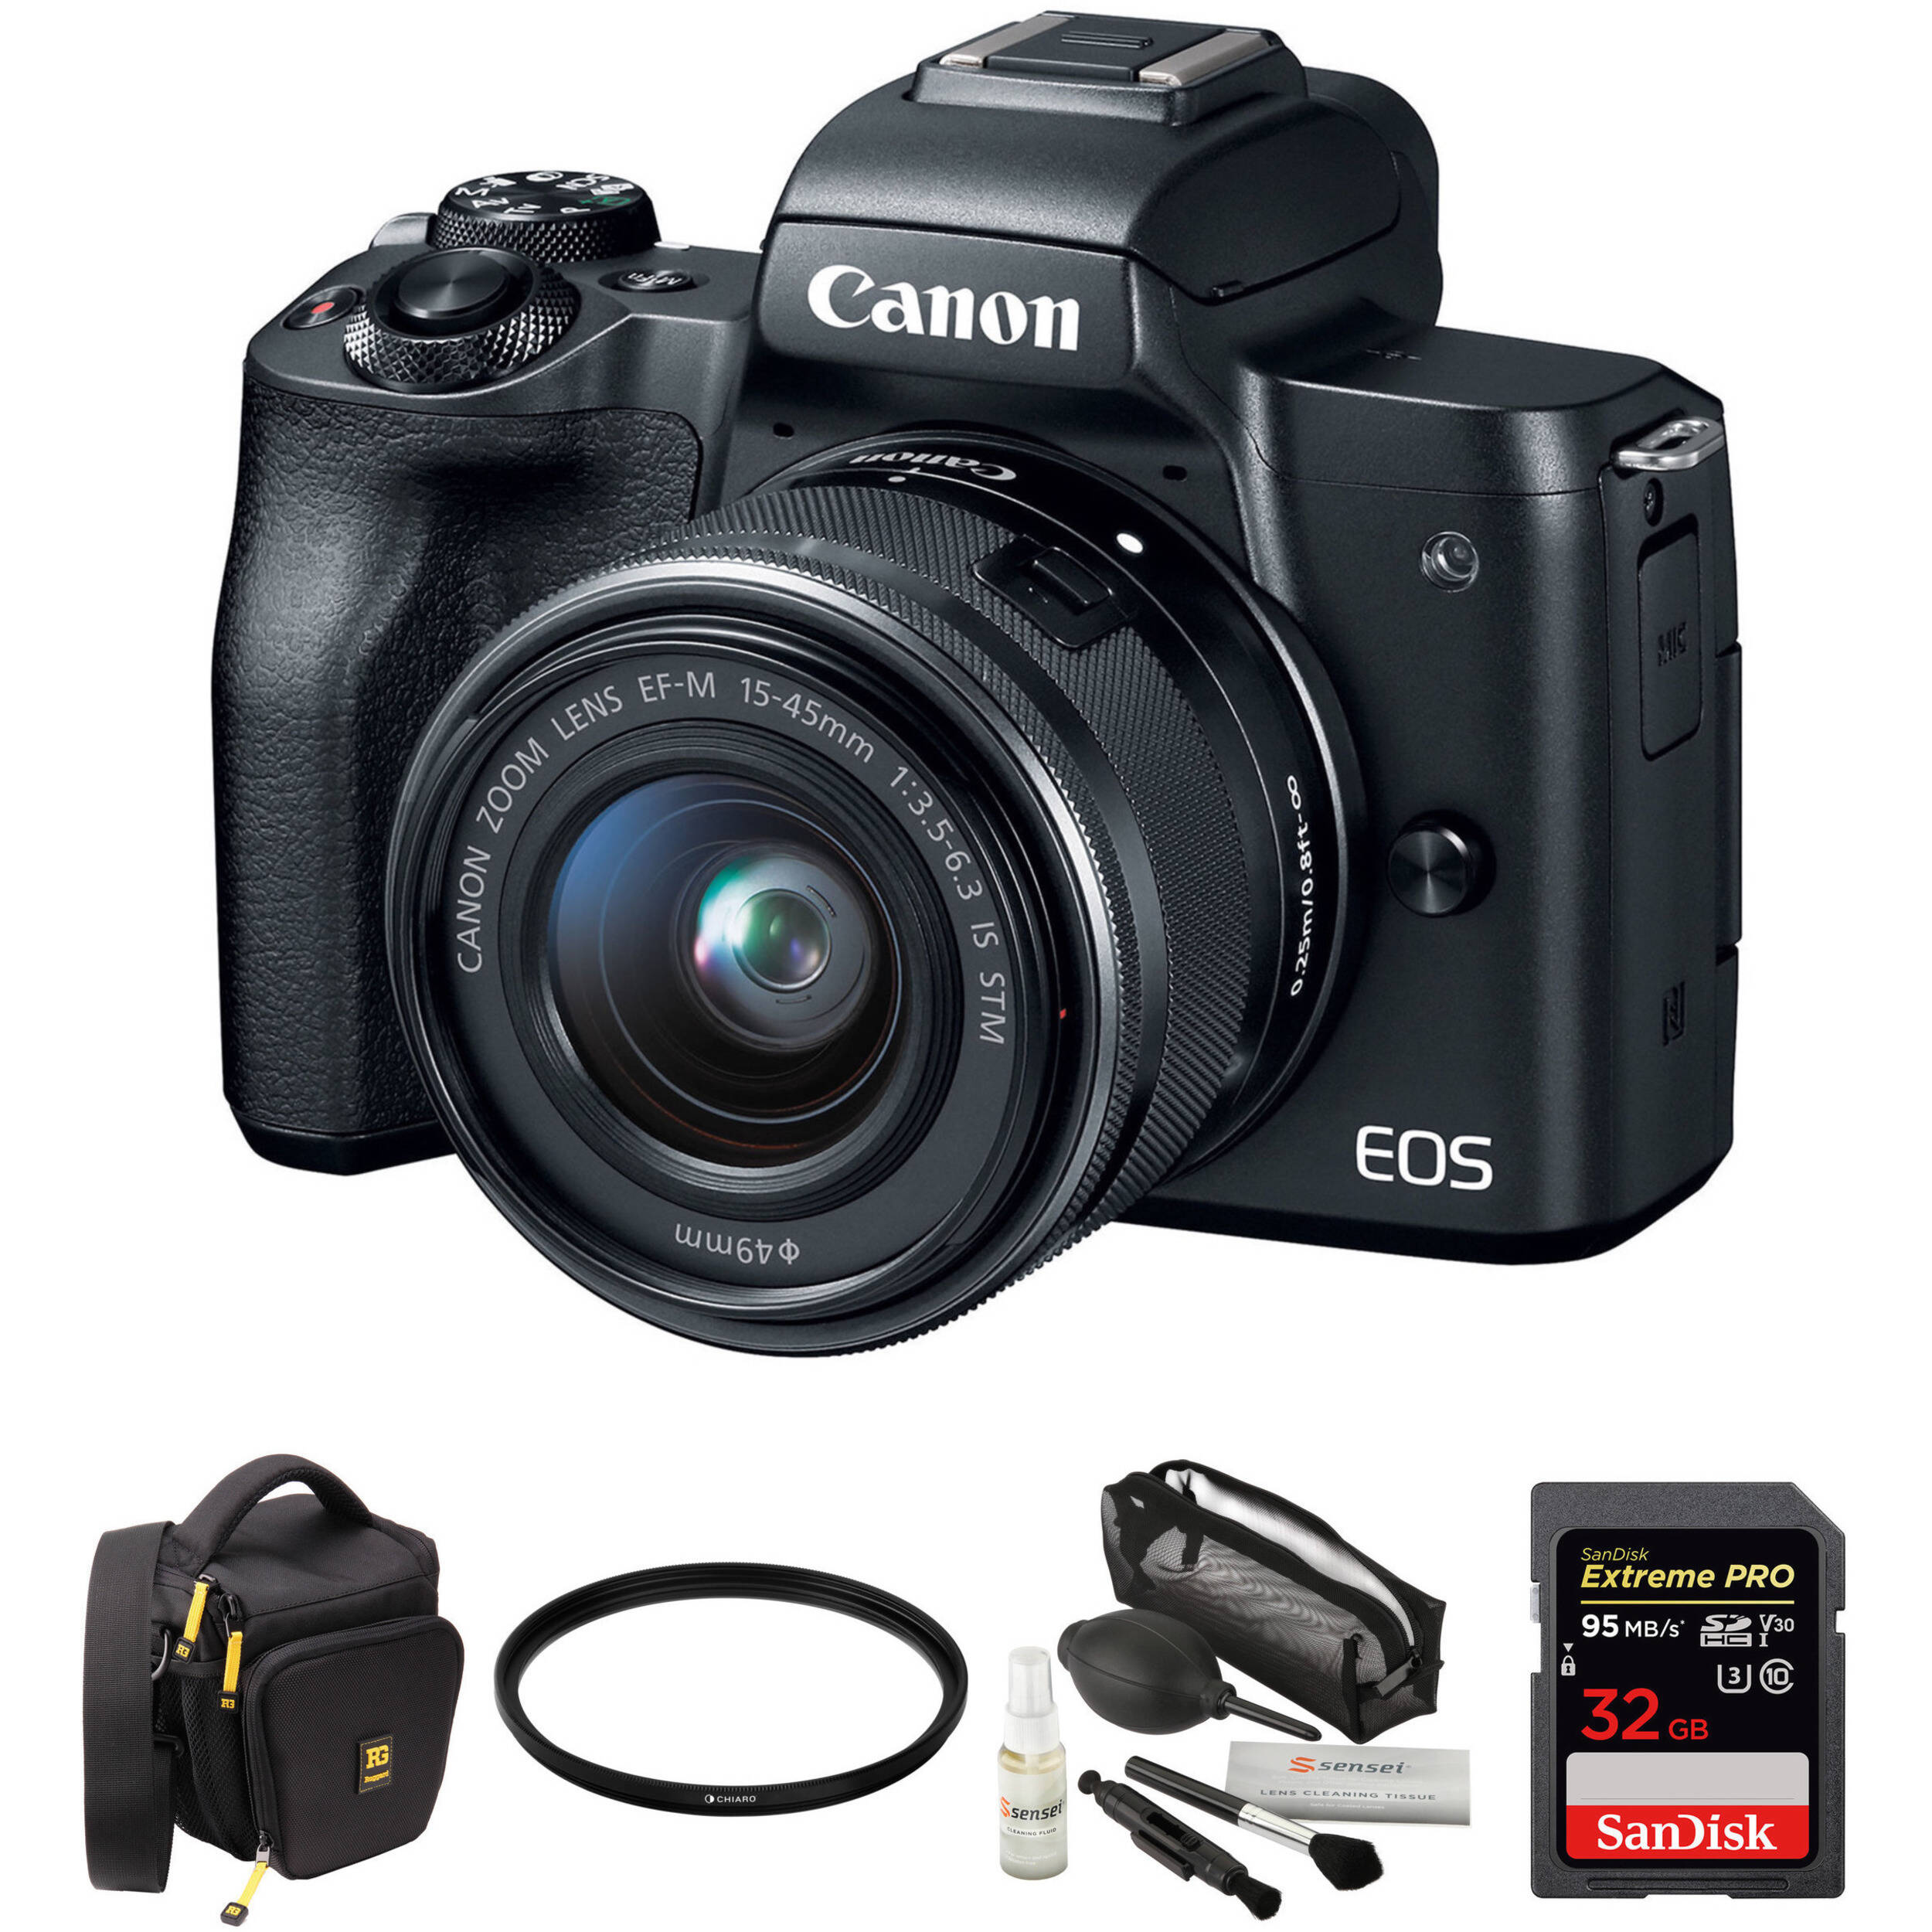 Canon EOS M50 Mirrorless Digital Camera with 15-45mm Lens and Accessory Kit  (Black)